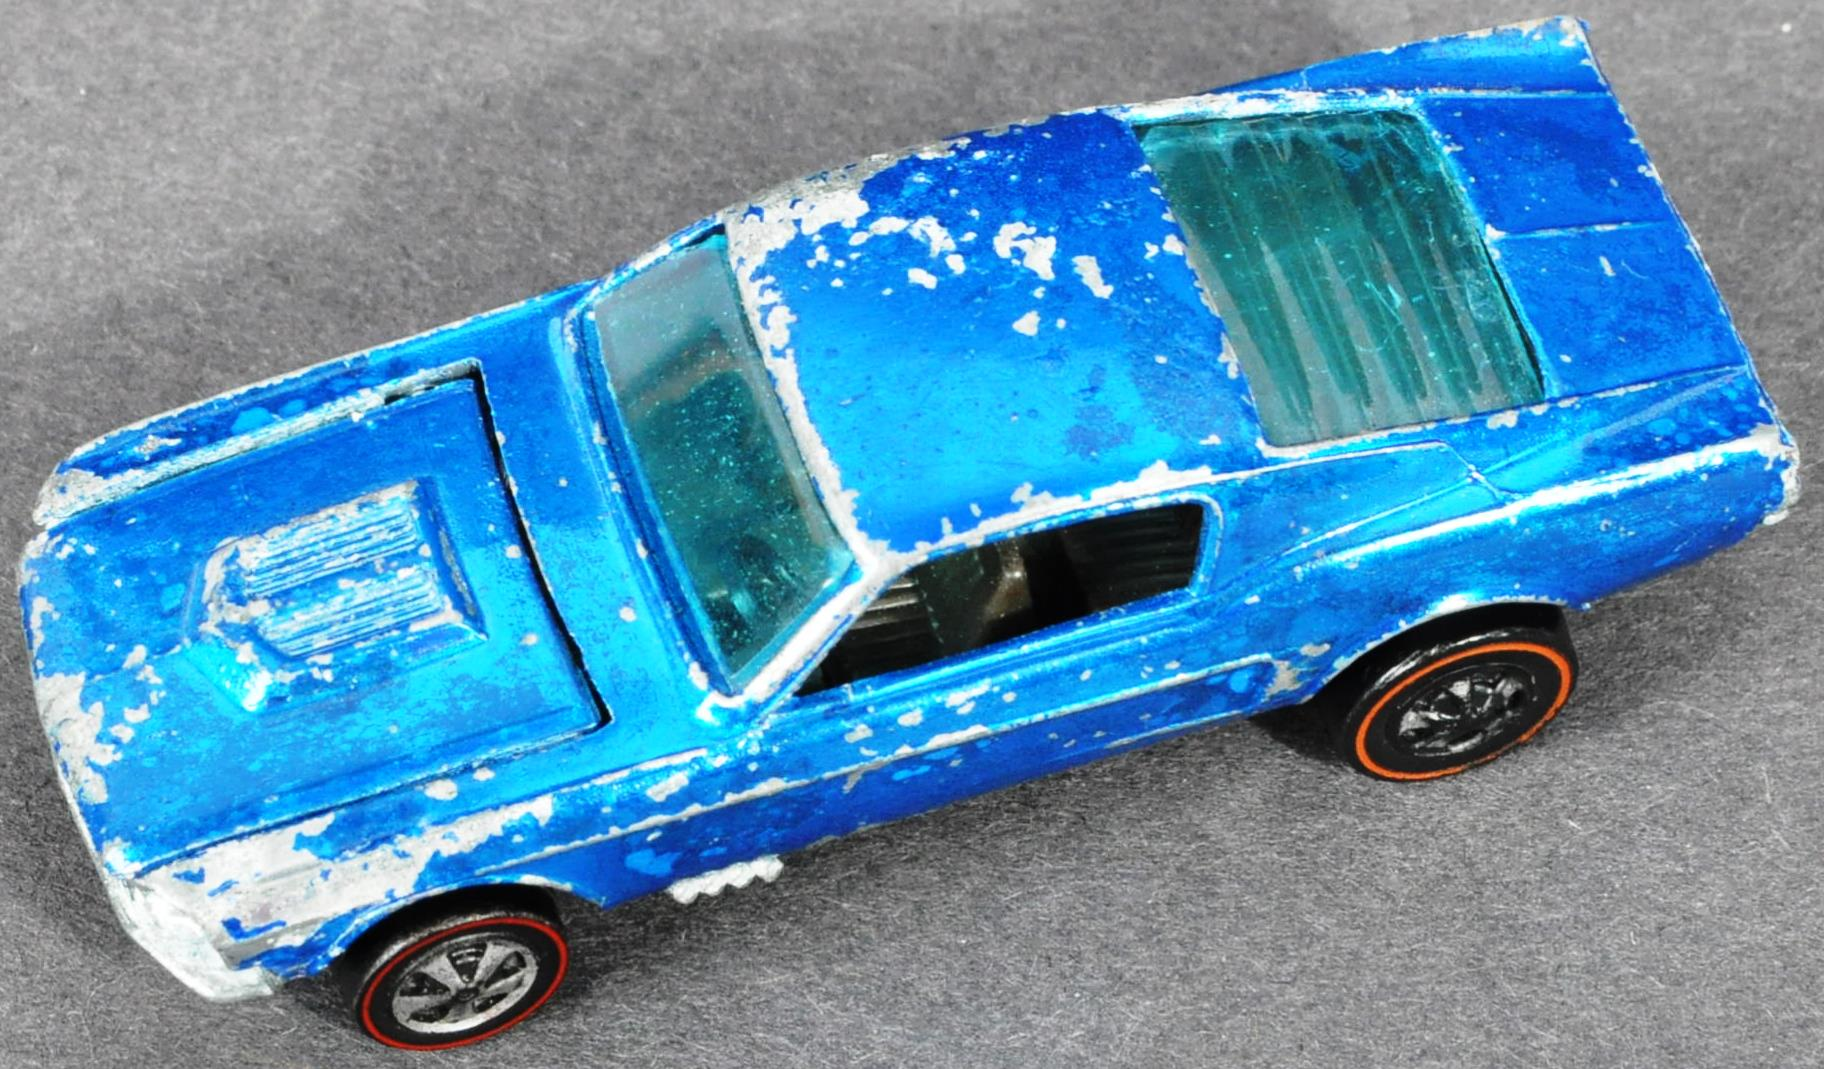 RARE HOT WHEELS CUSTOM MUSTANG WITH LOUVERED WINDOW - Image 2 of 5